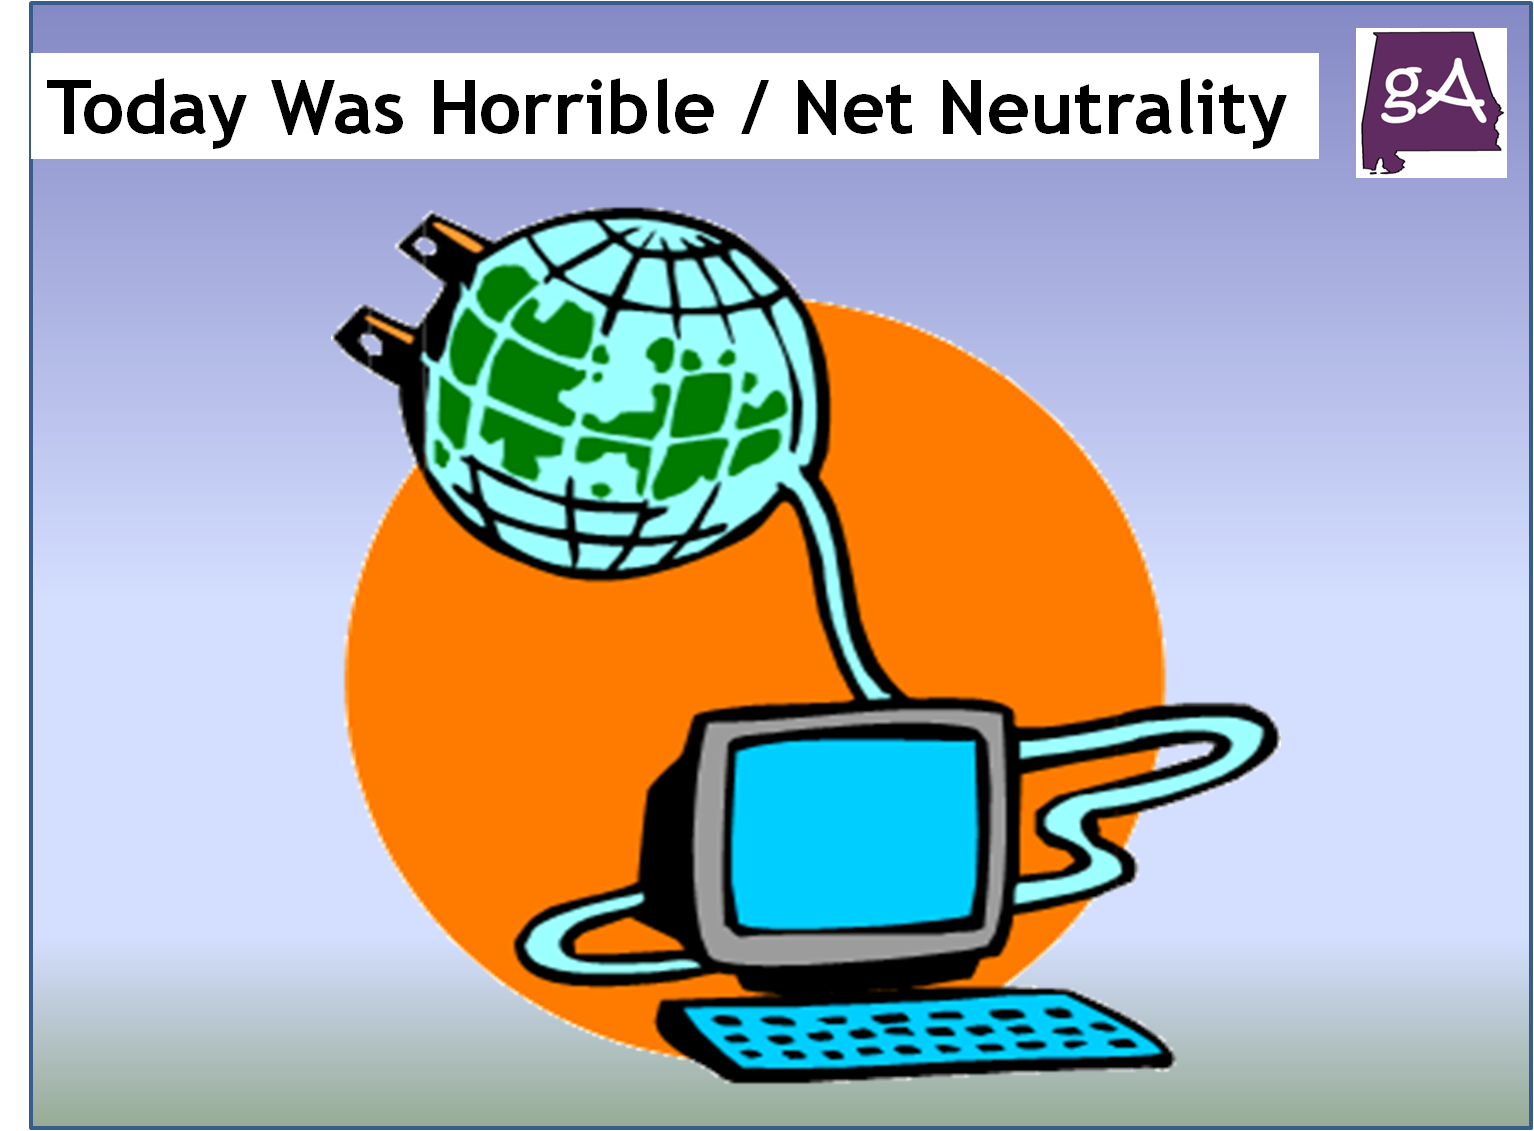 Today Was A Horrible Day Over The End Of Net Neutrality | Geek Alabama on WordPress.com